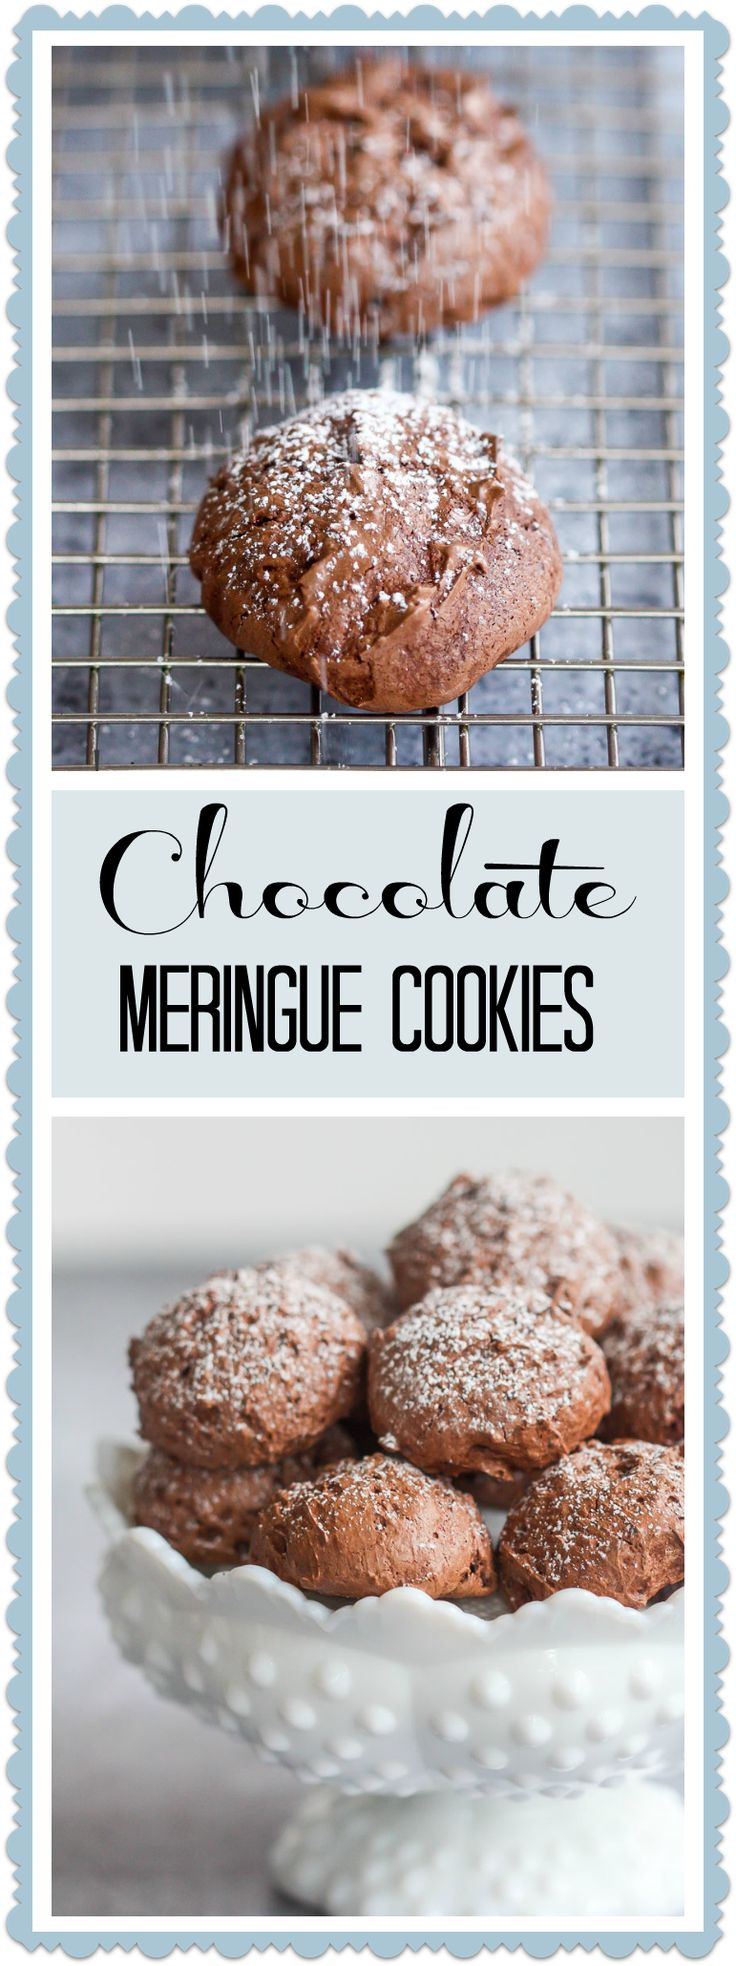 Best 25+ Chocolate meringue cookies ideas on Pinterest | Chocolate ...